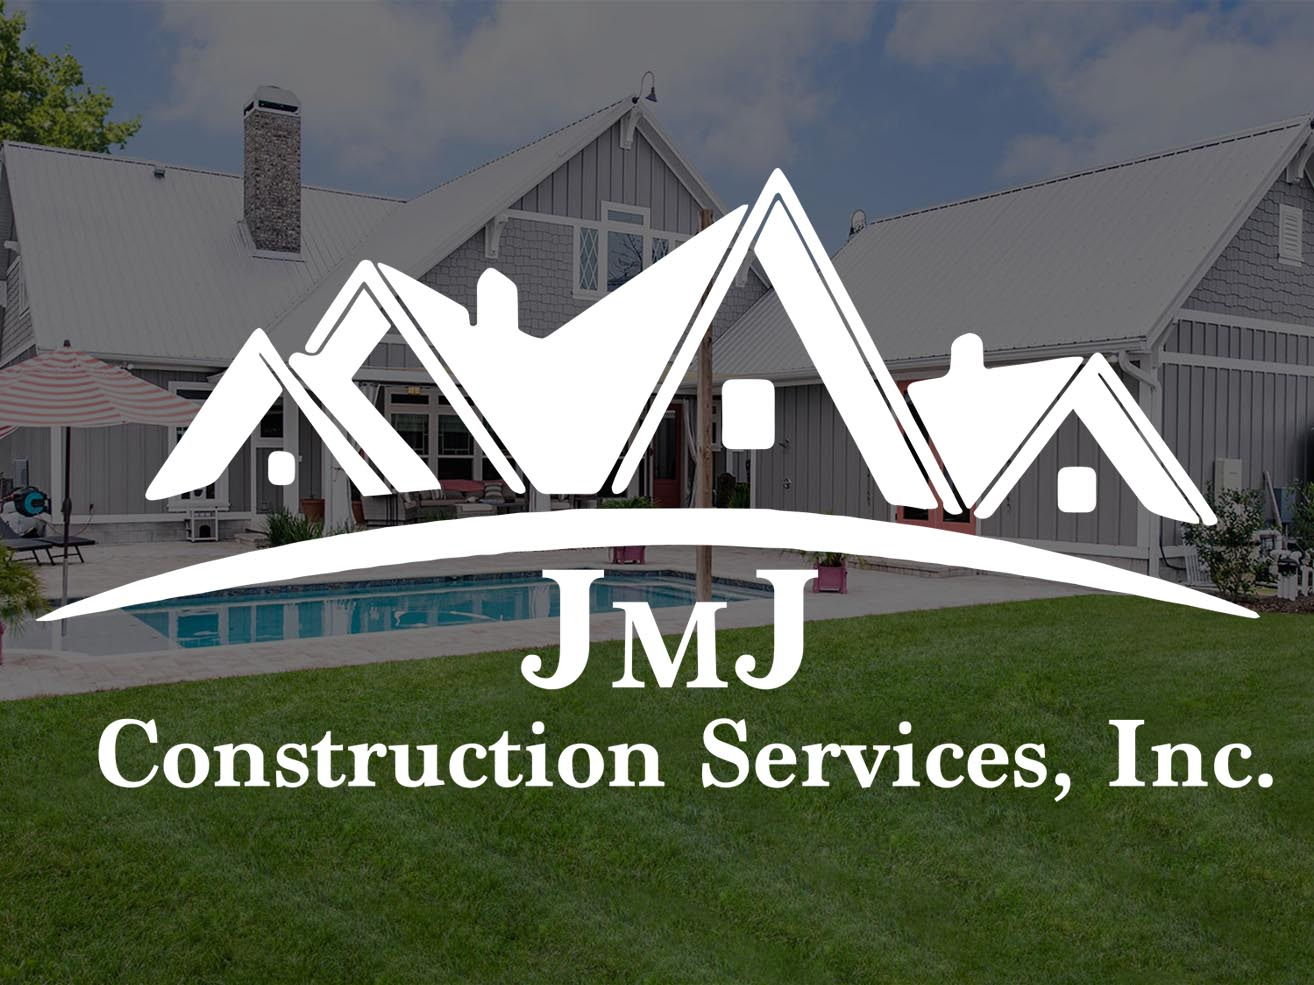 JMJ Construction Services, Inc.